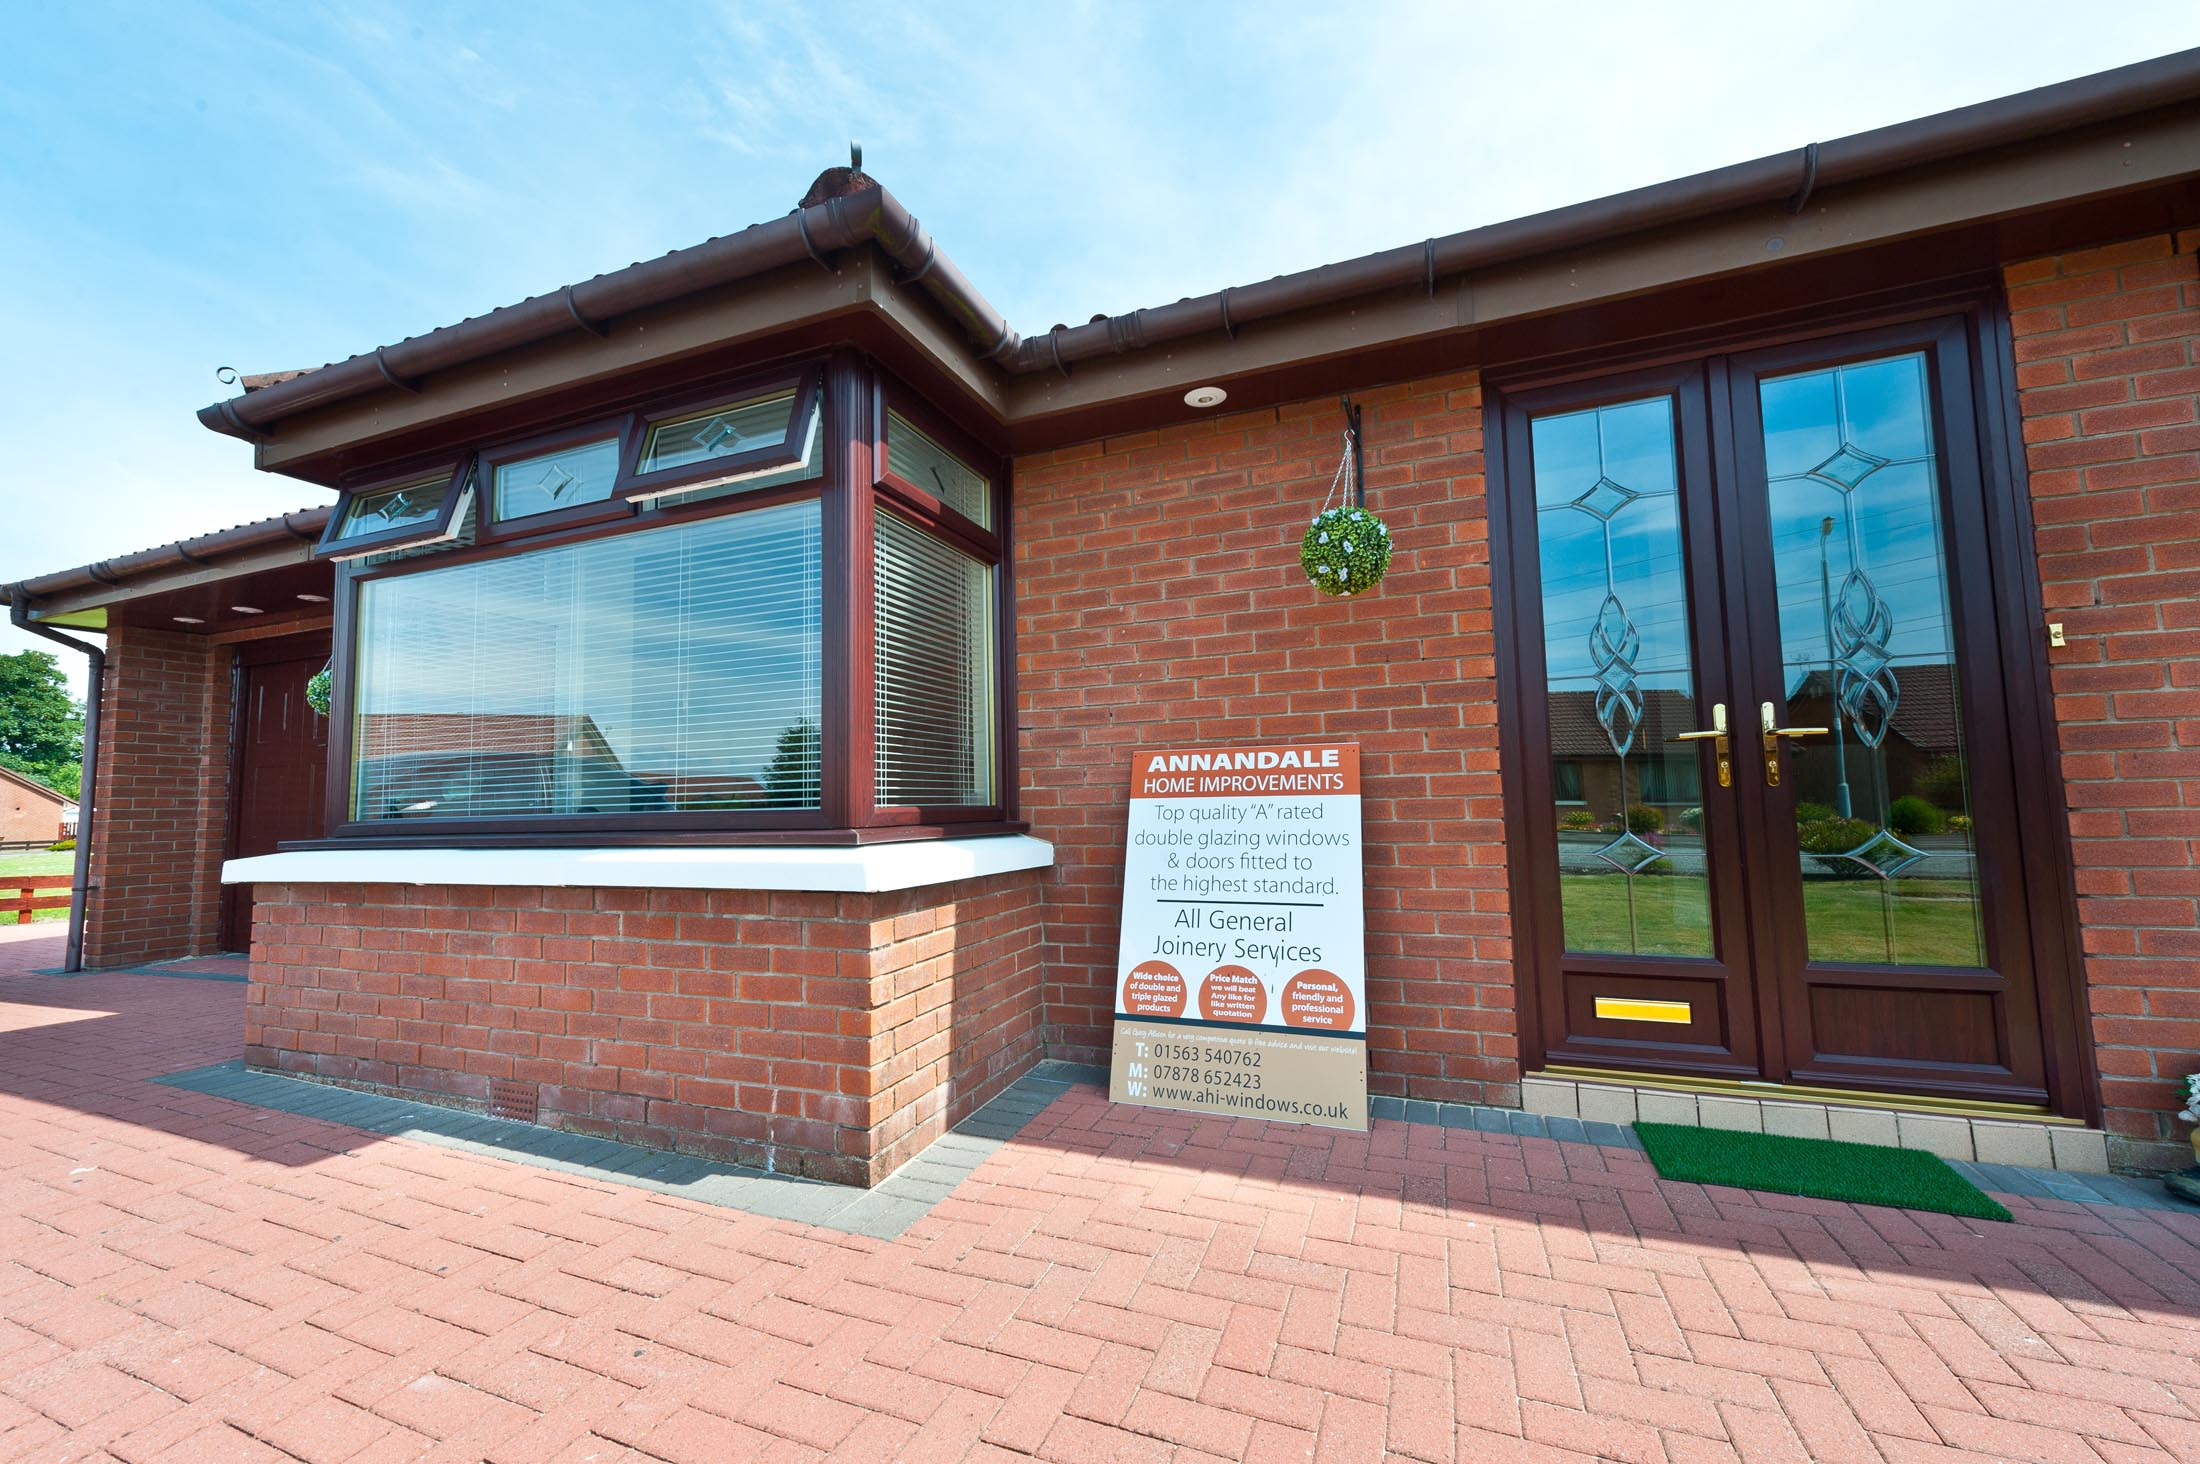 Ayrshire Window Fitters